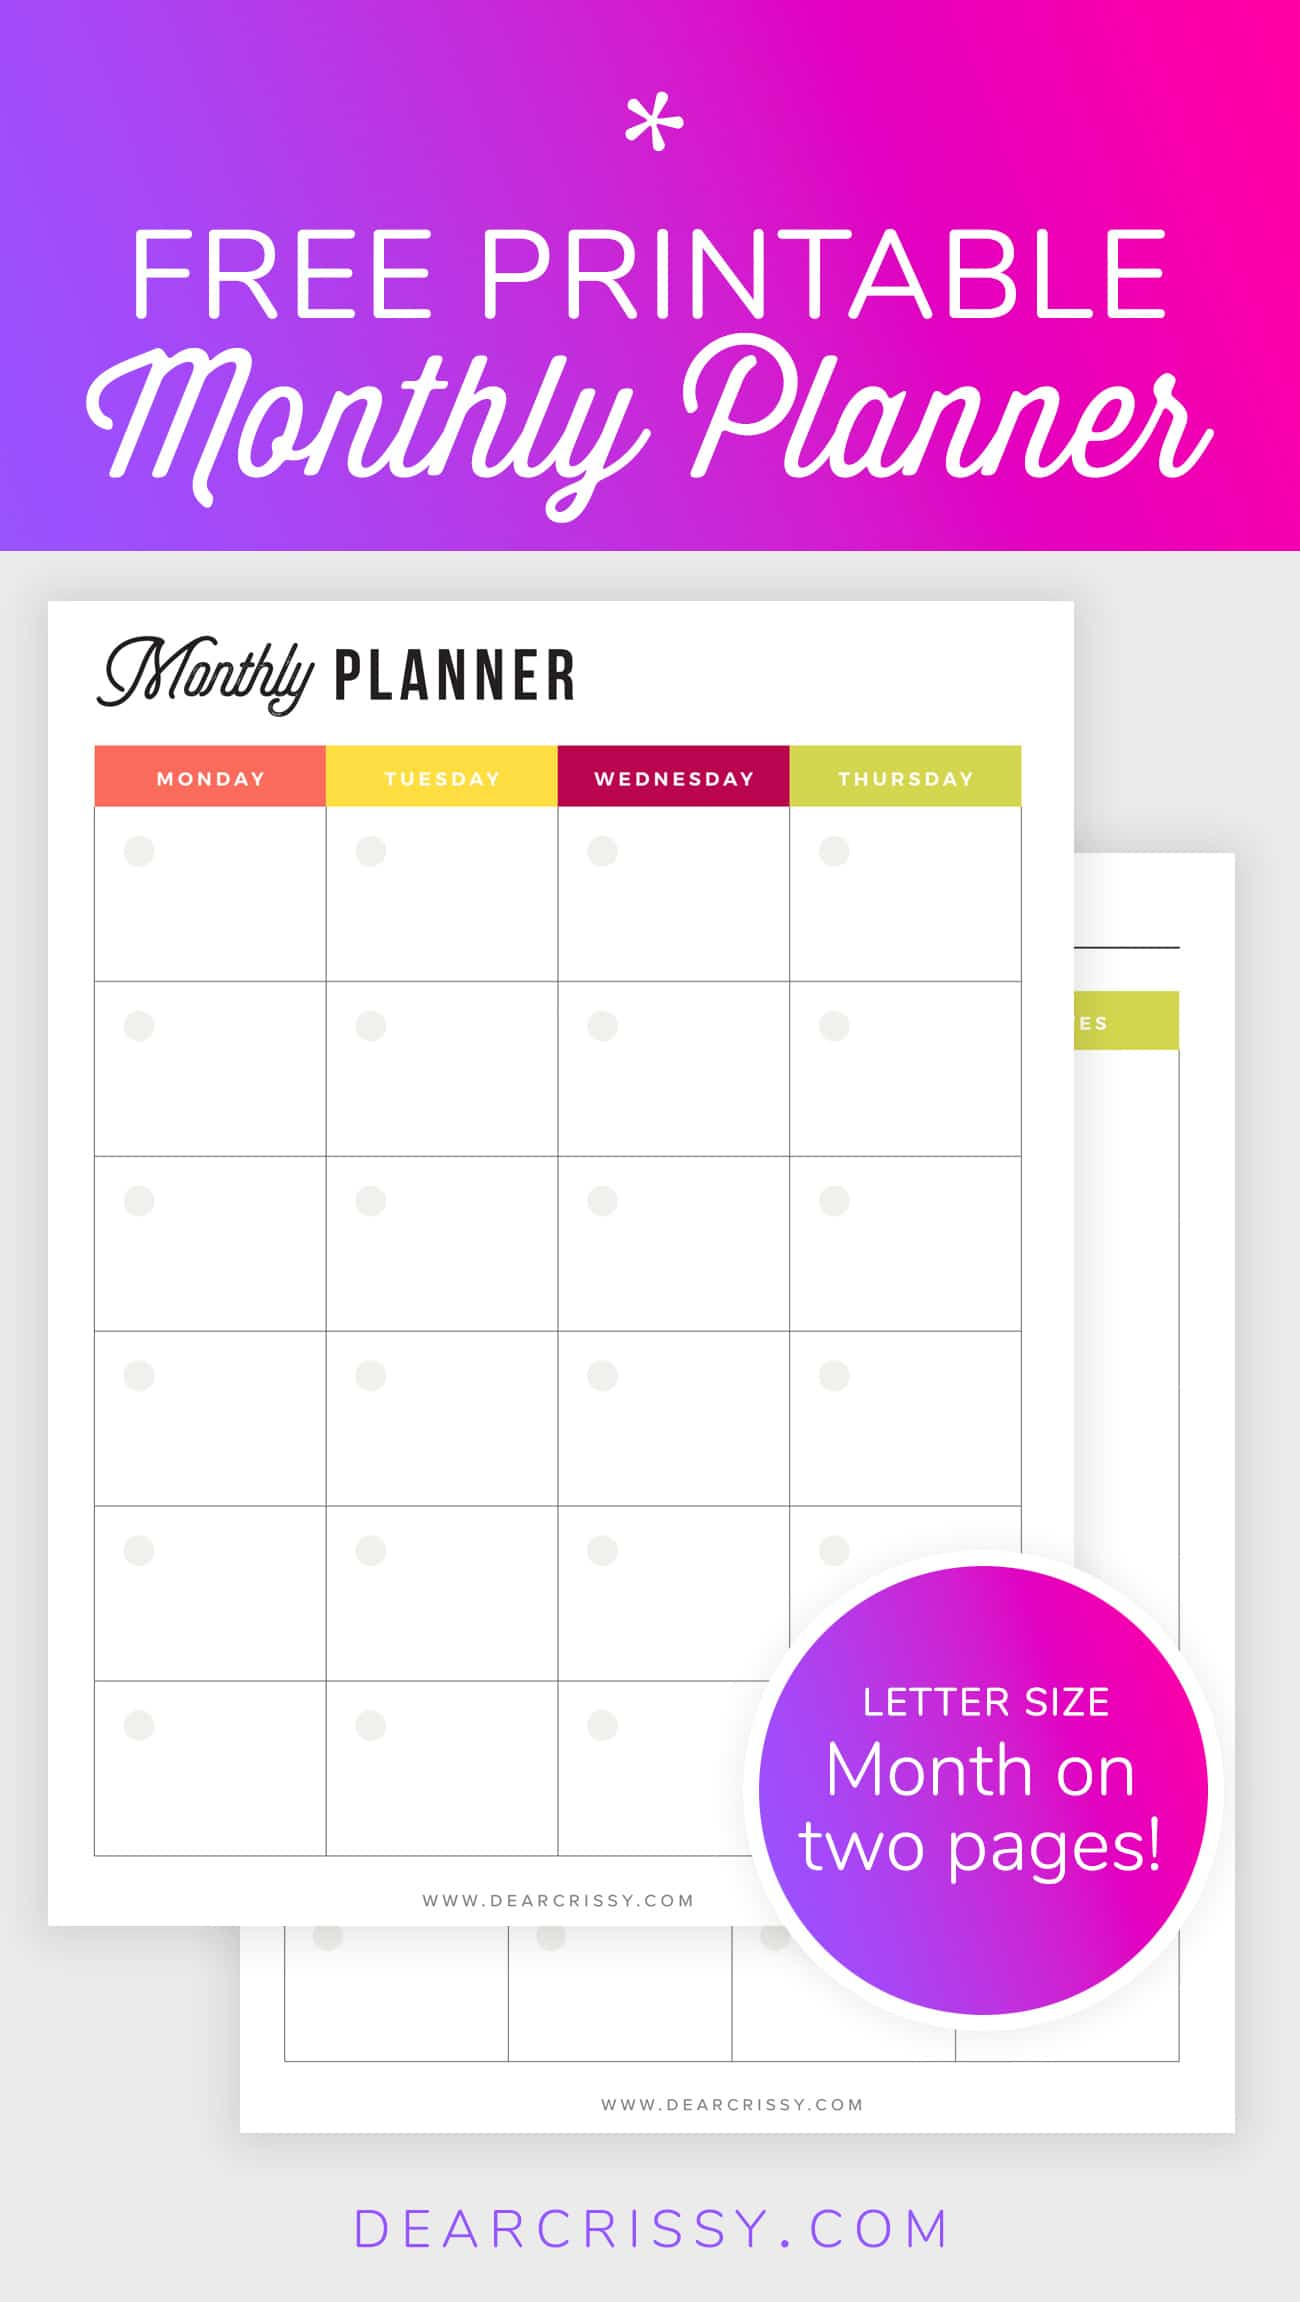 Free Printable Monthly Planner - Month-on-2-pages planner - MO2P planner - Letter size undated planner #Printable #Planner